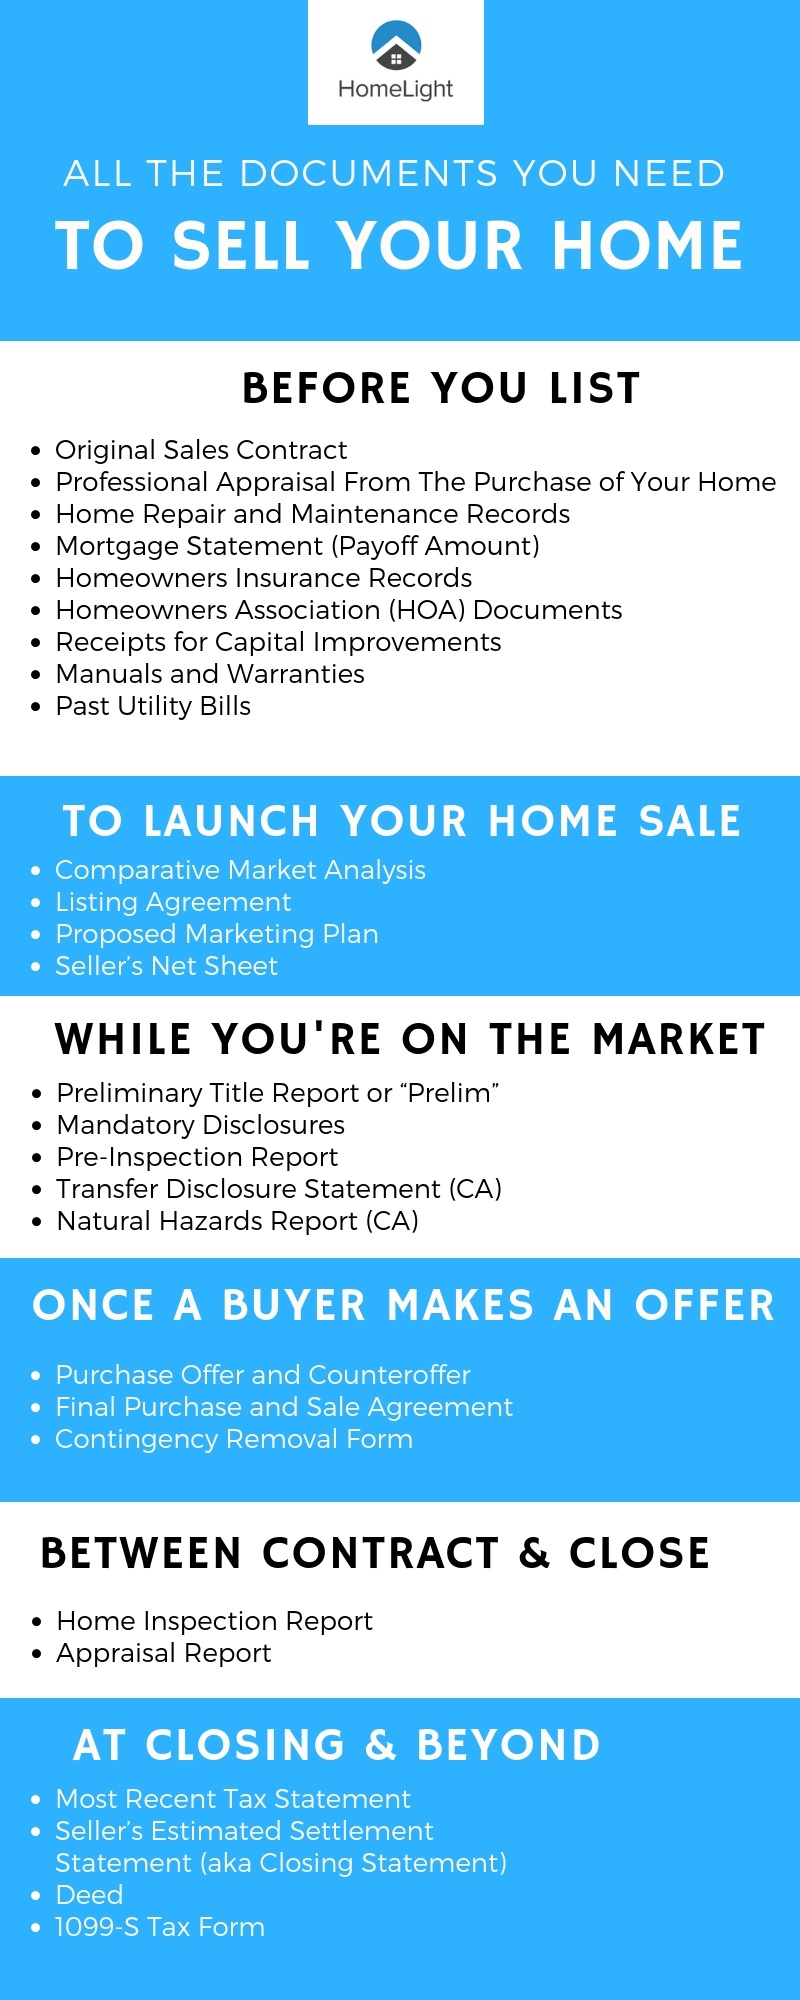 complete list of all the documents needed to sell a house